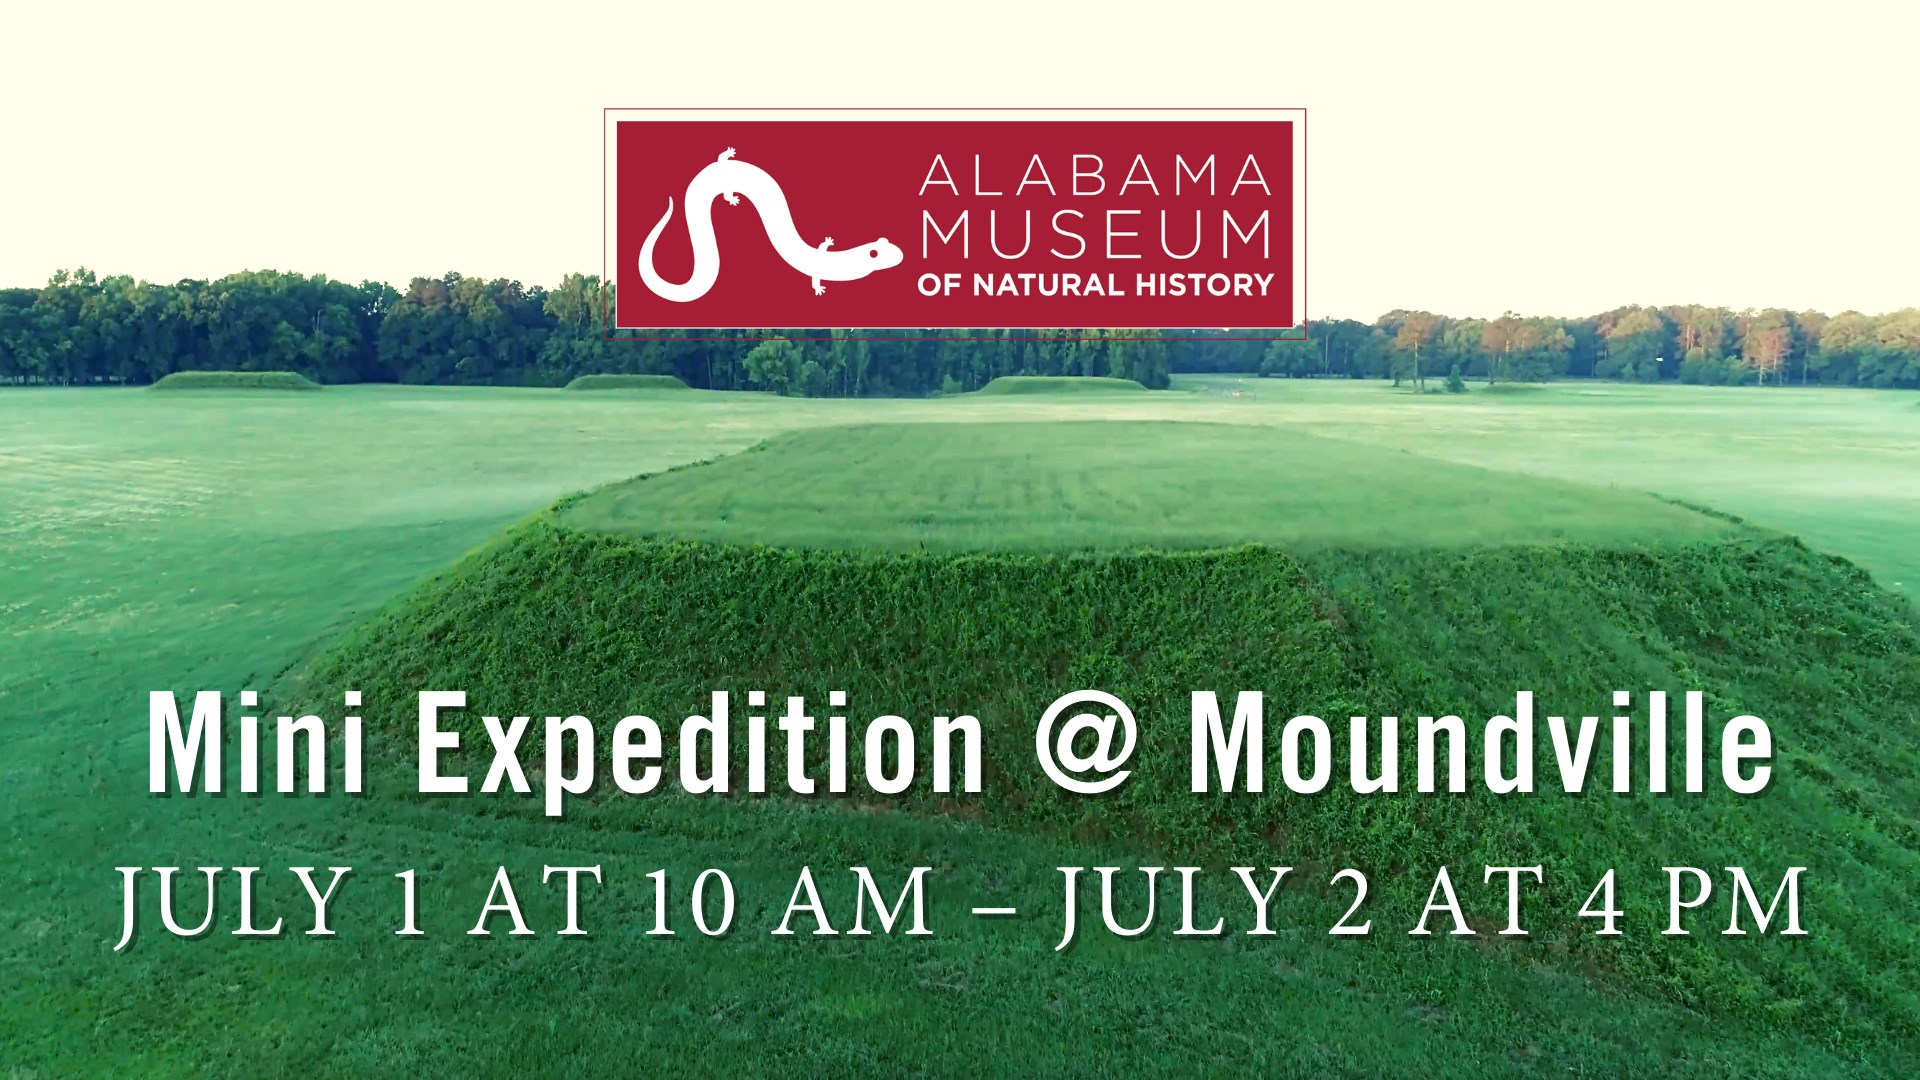 Mini Expedition @ Moundville